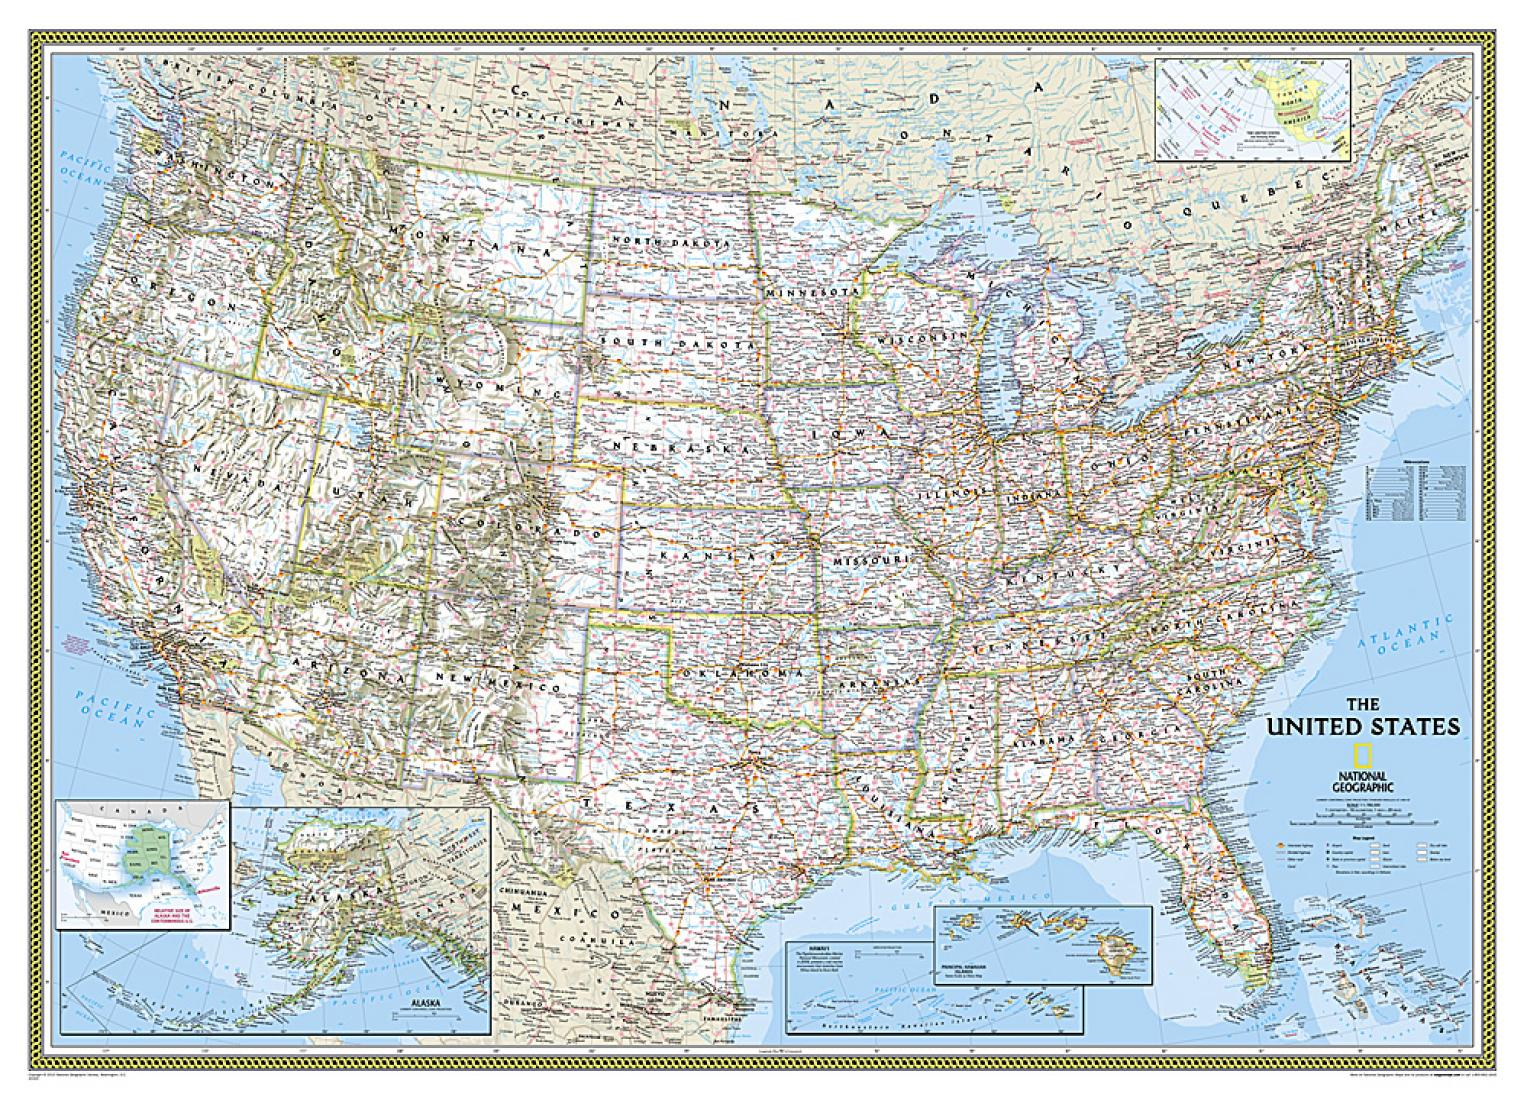 NATIONAL GEOGRAPHIC map 1946 The United States of America USA ...